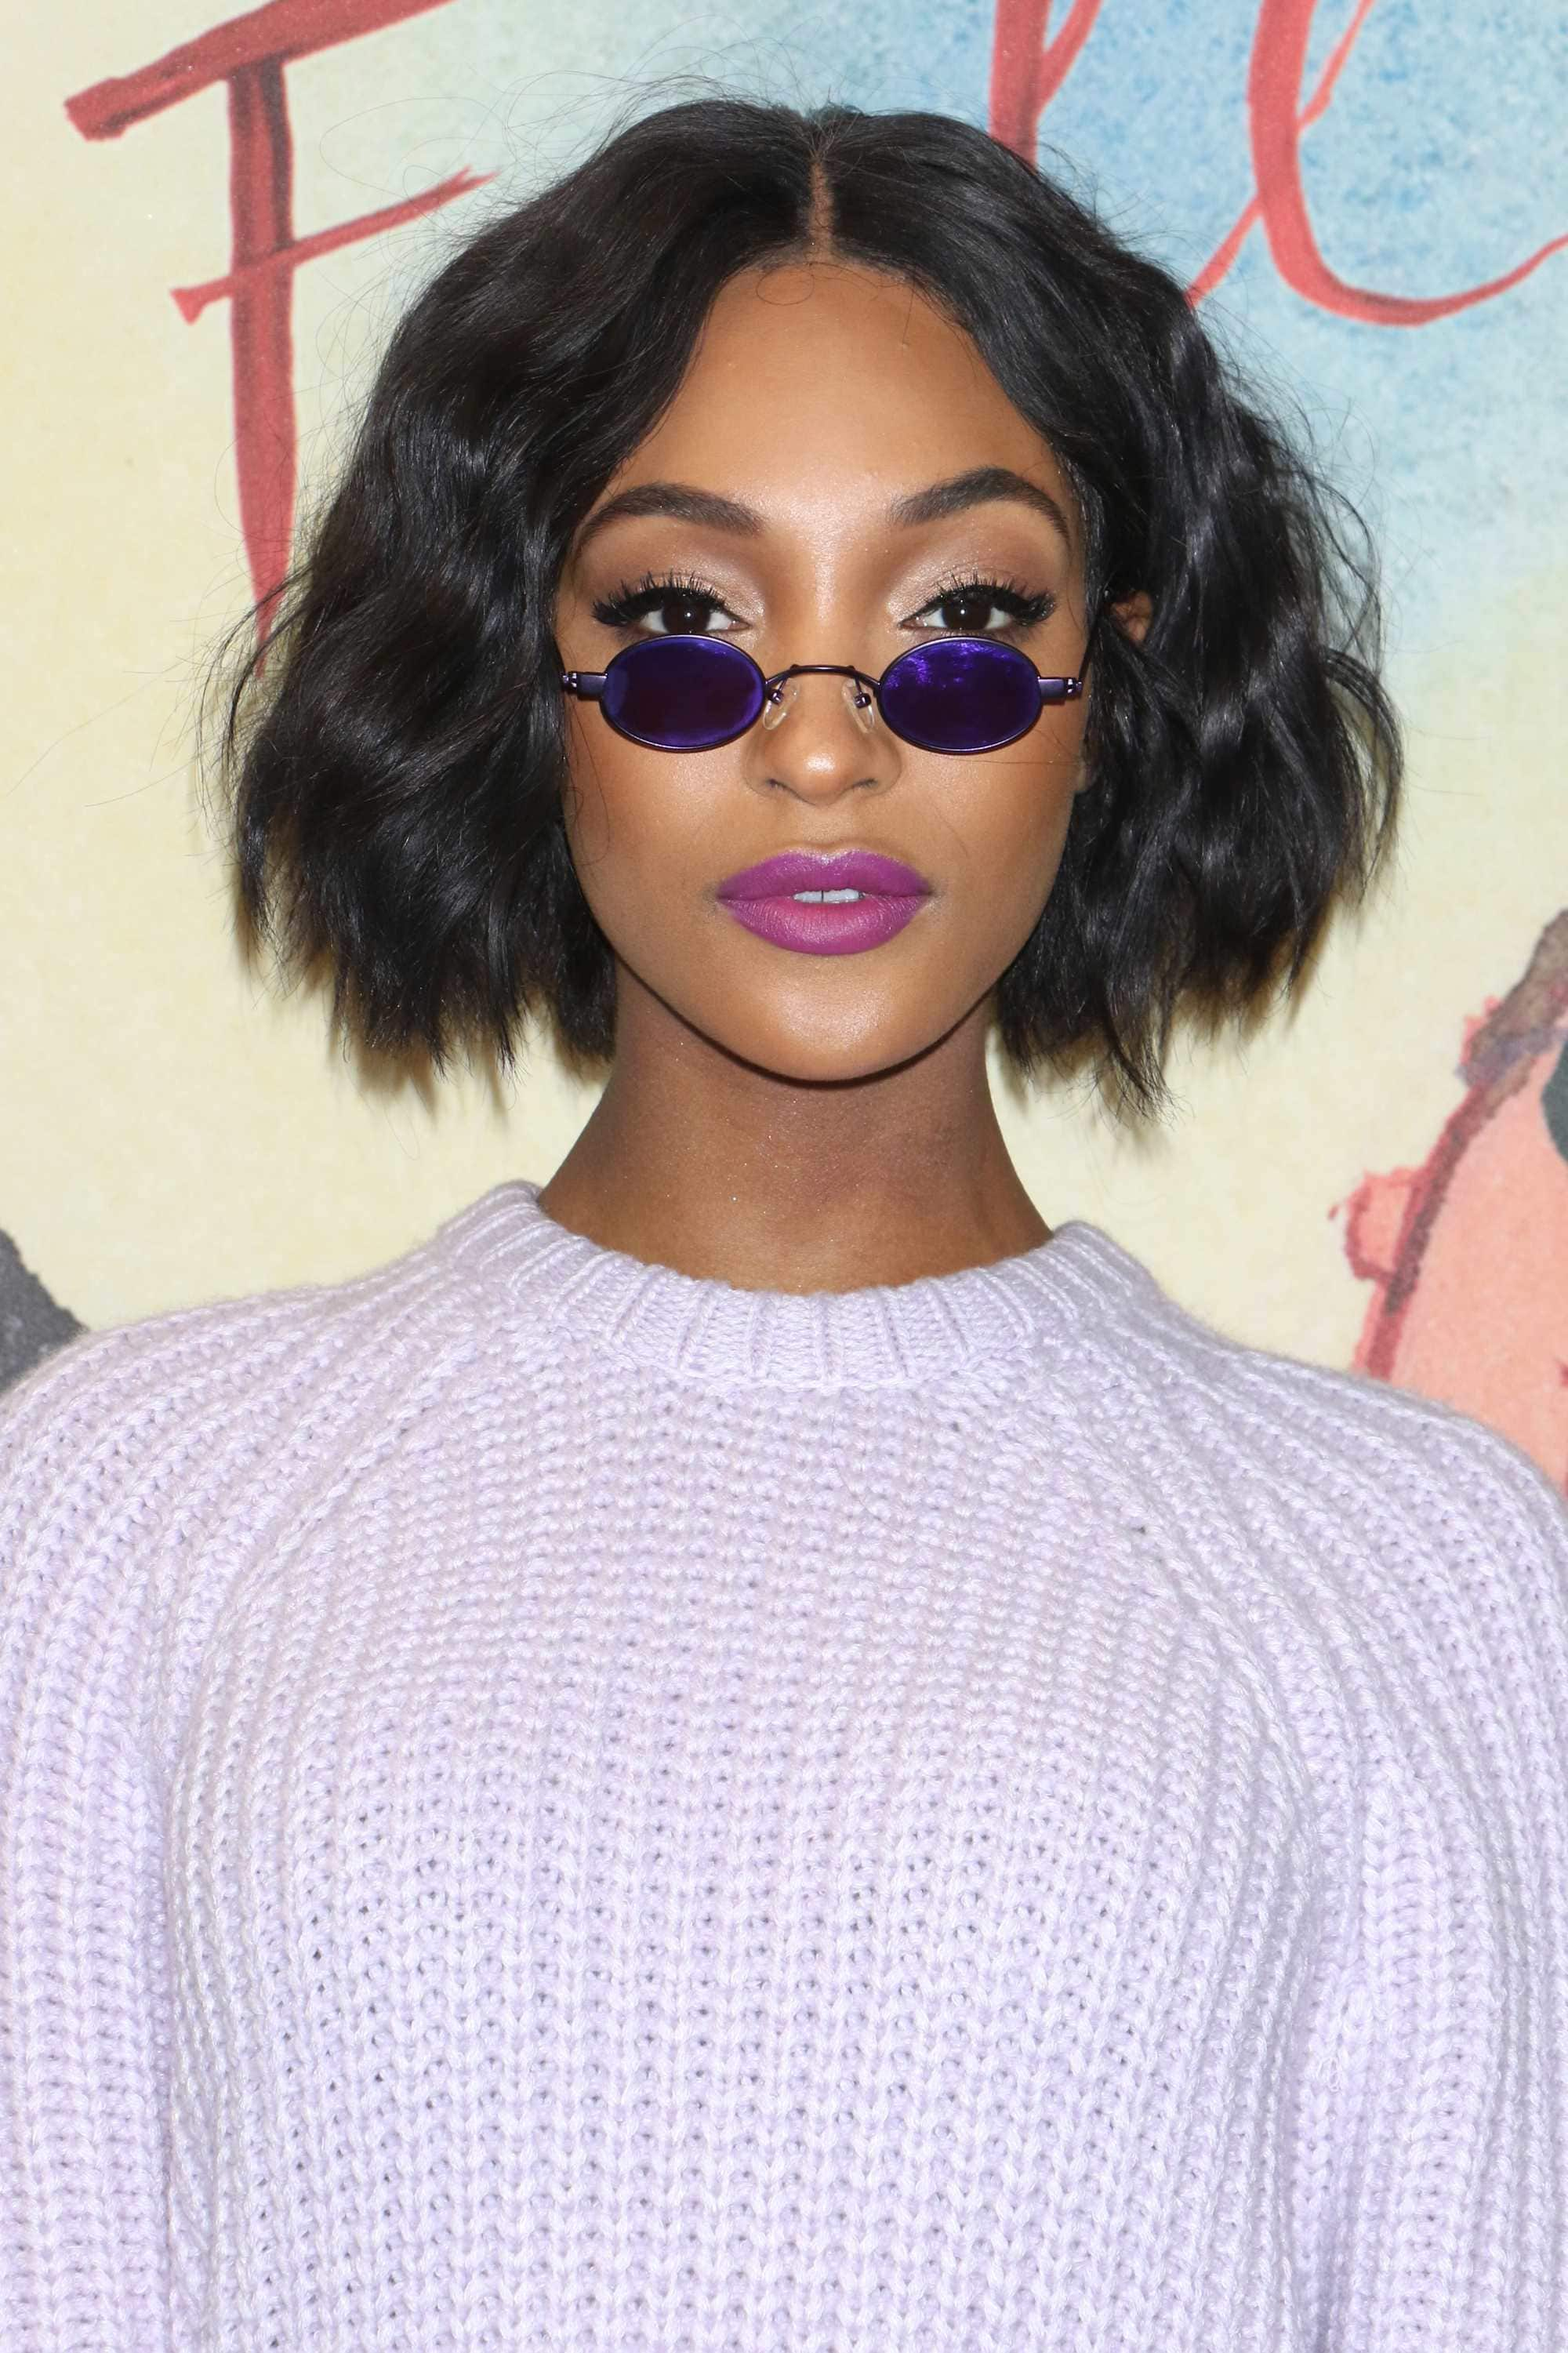 Jourdan Dunn with a wavy dark brown bob hairstyle on the red carpet, wearing a lilac jumper on the red carpet